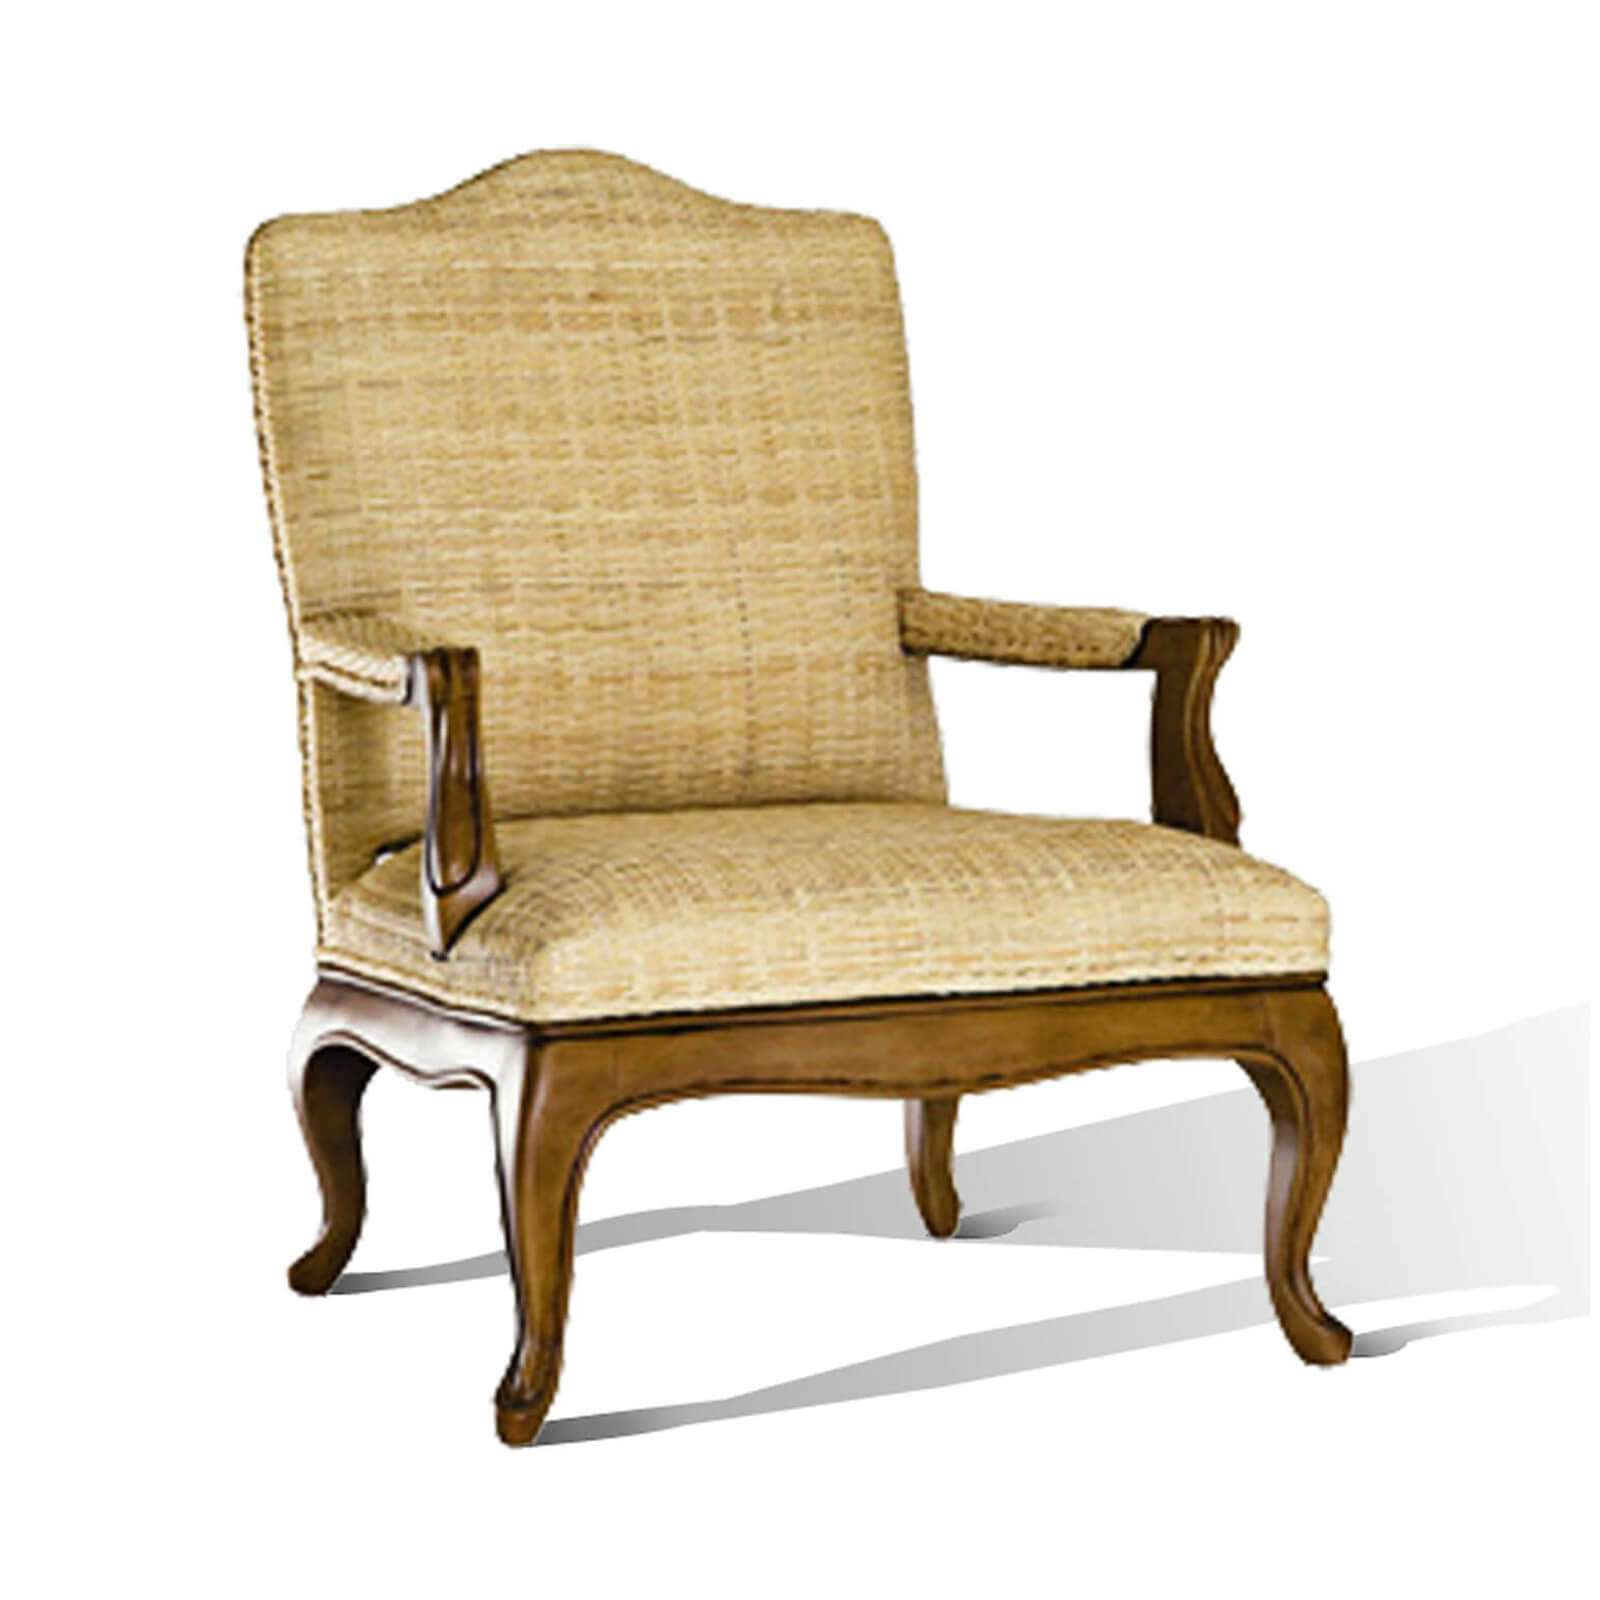 CALEDONIA ARM CHAIR